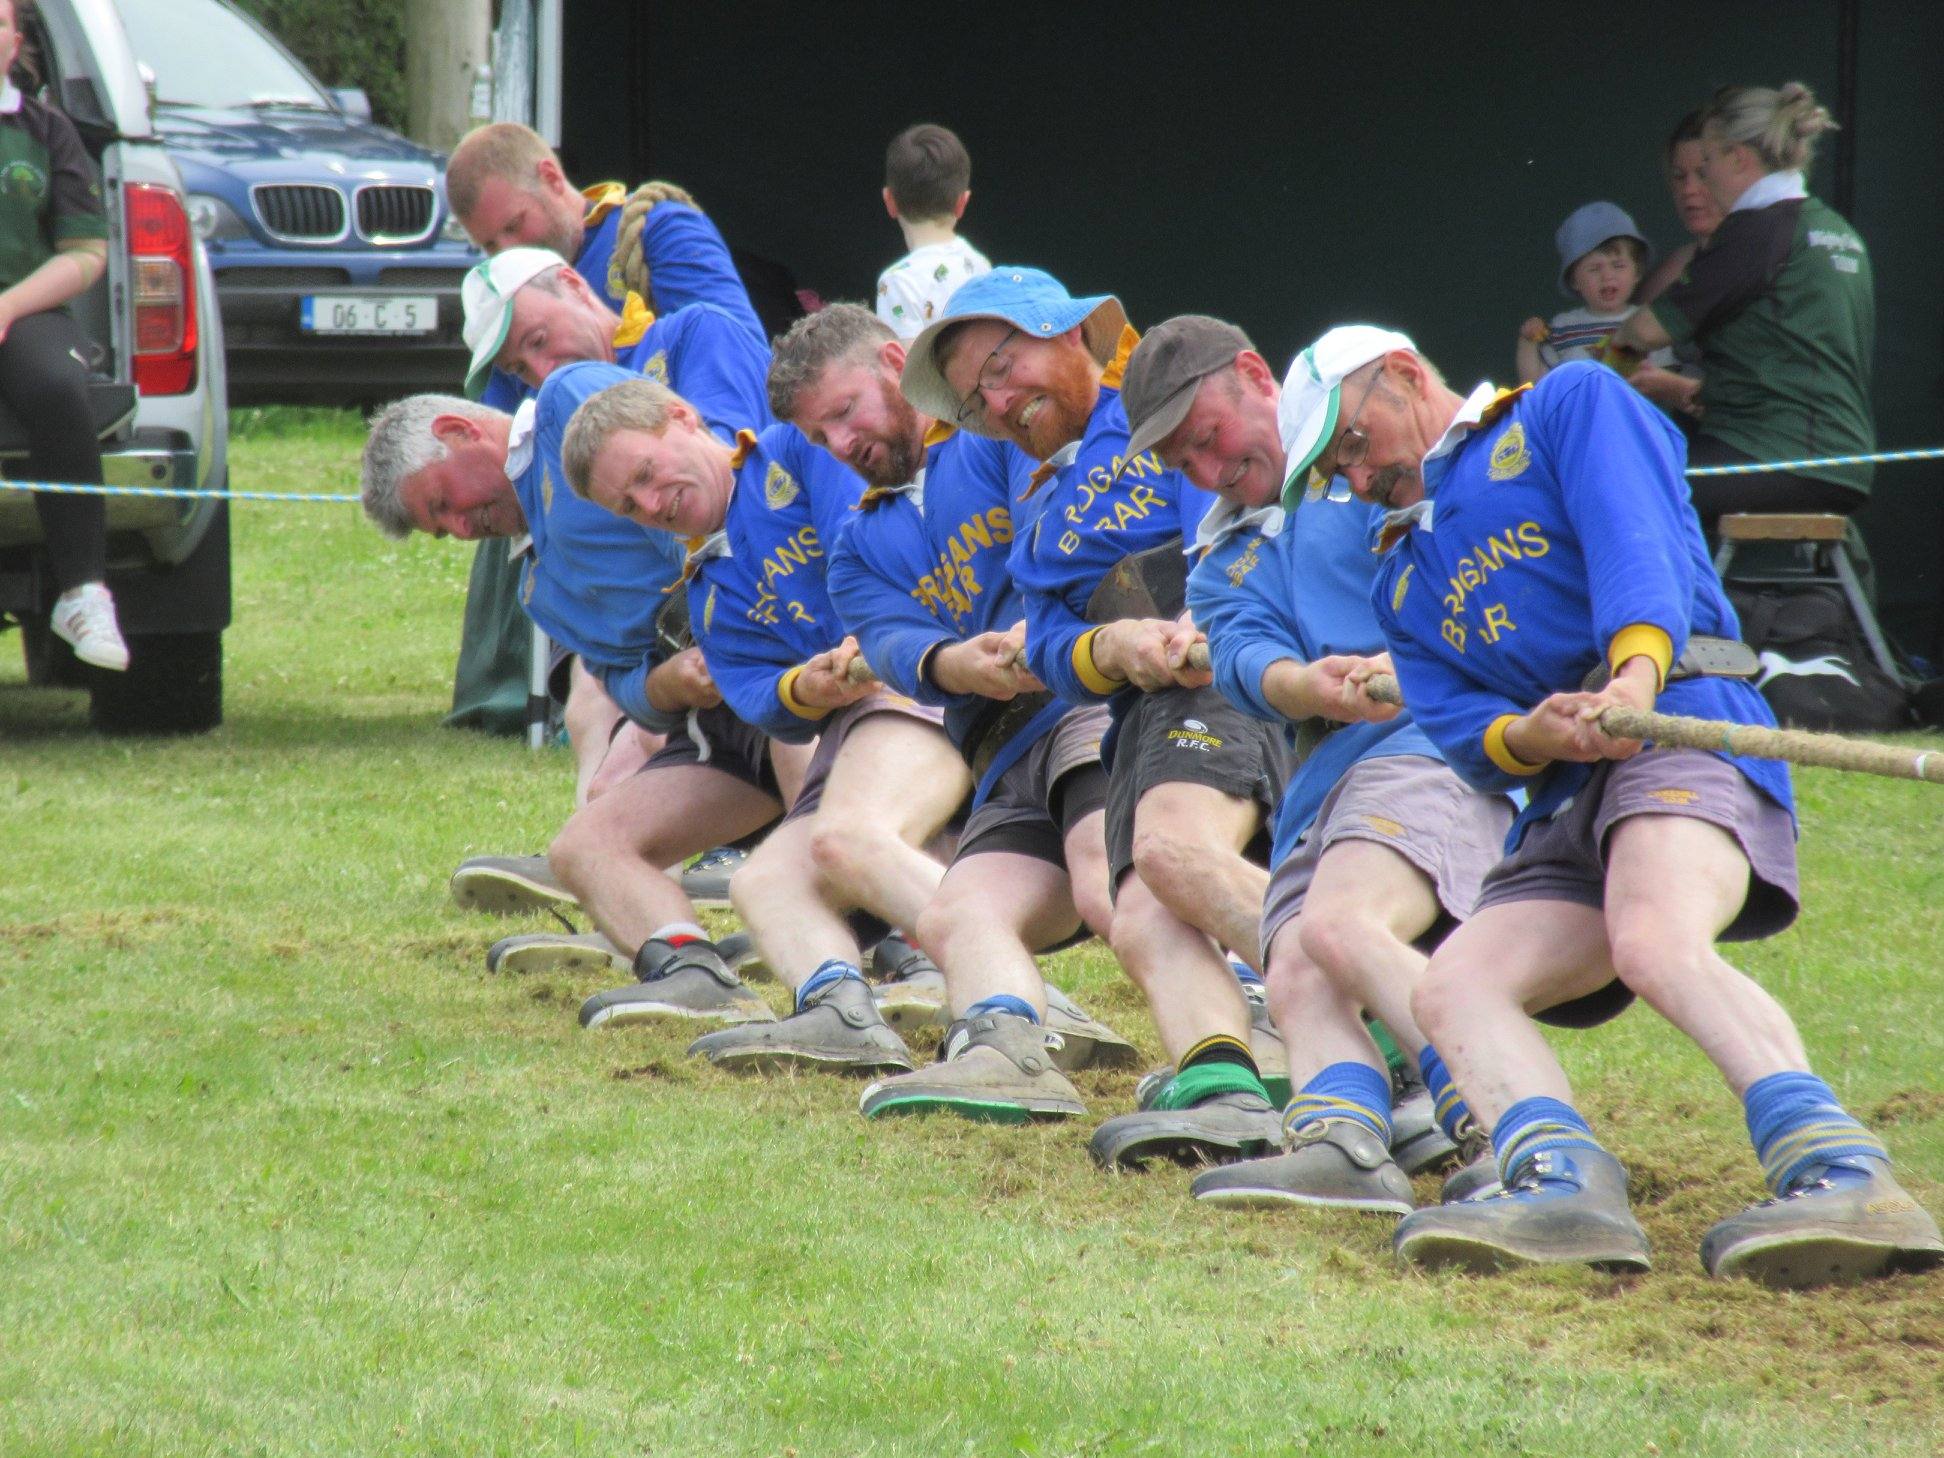 Midwest Radio - 2019 European Senior Tug of War